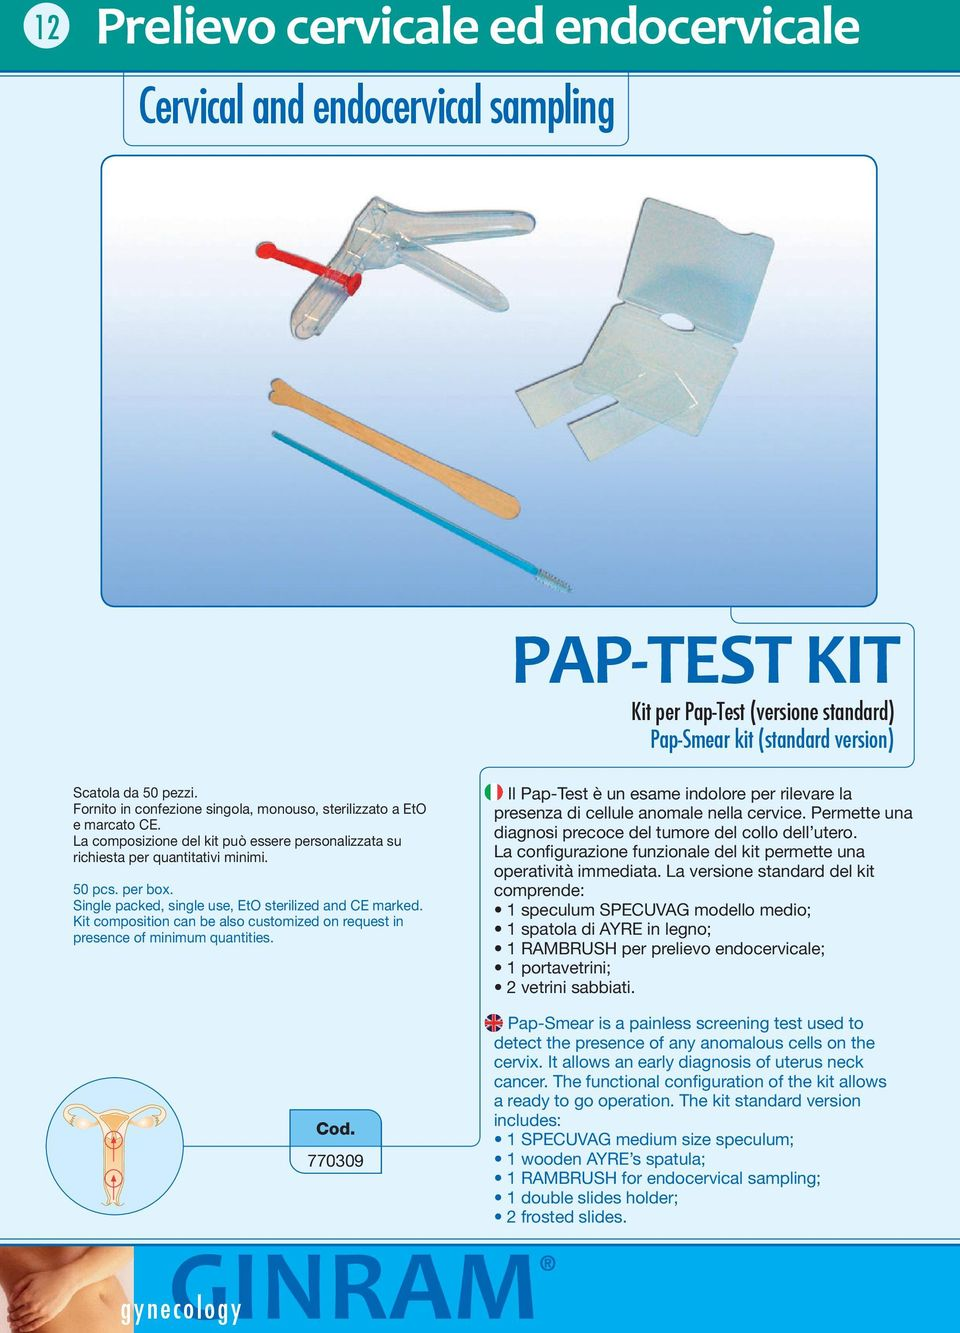 Single packed, single use, EtO sterilized and CE marked. Kit composition can be also customized on request in presence of minimum quantities.